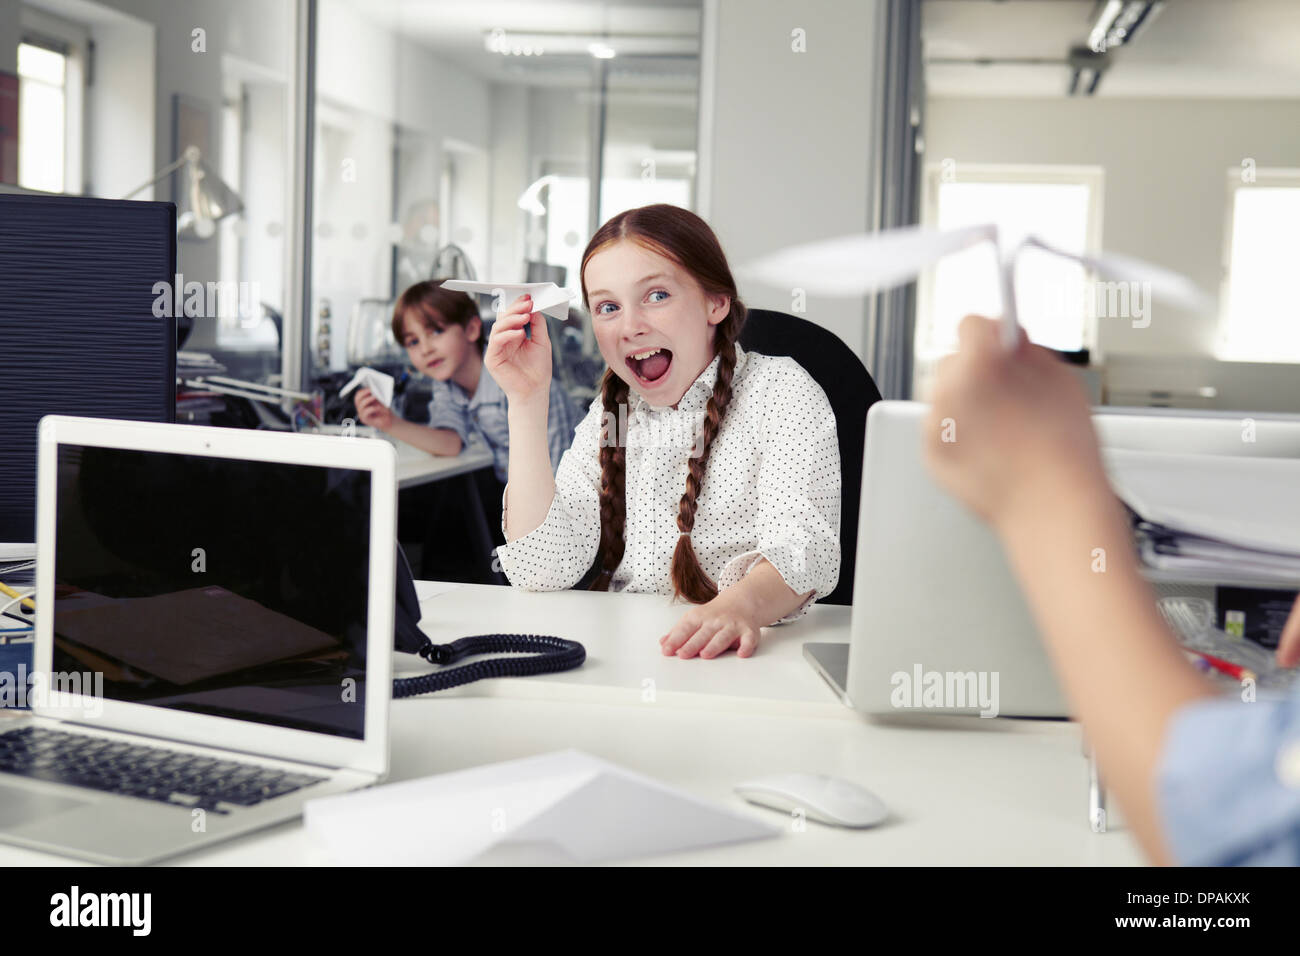 Children holding paper airplanes in office - Stock Image